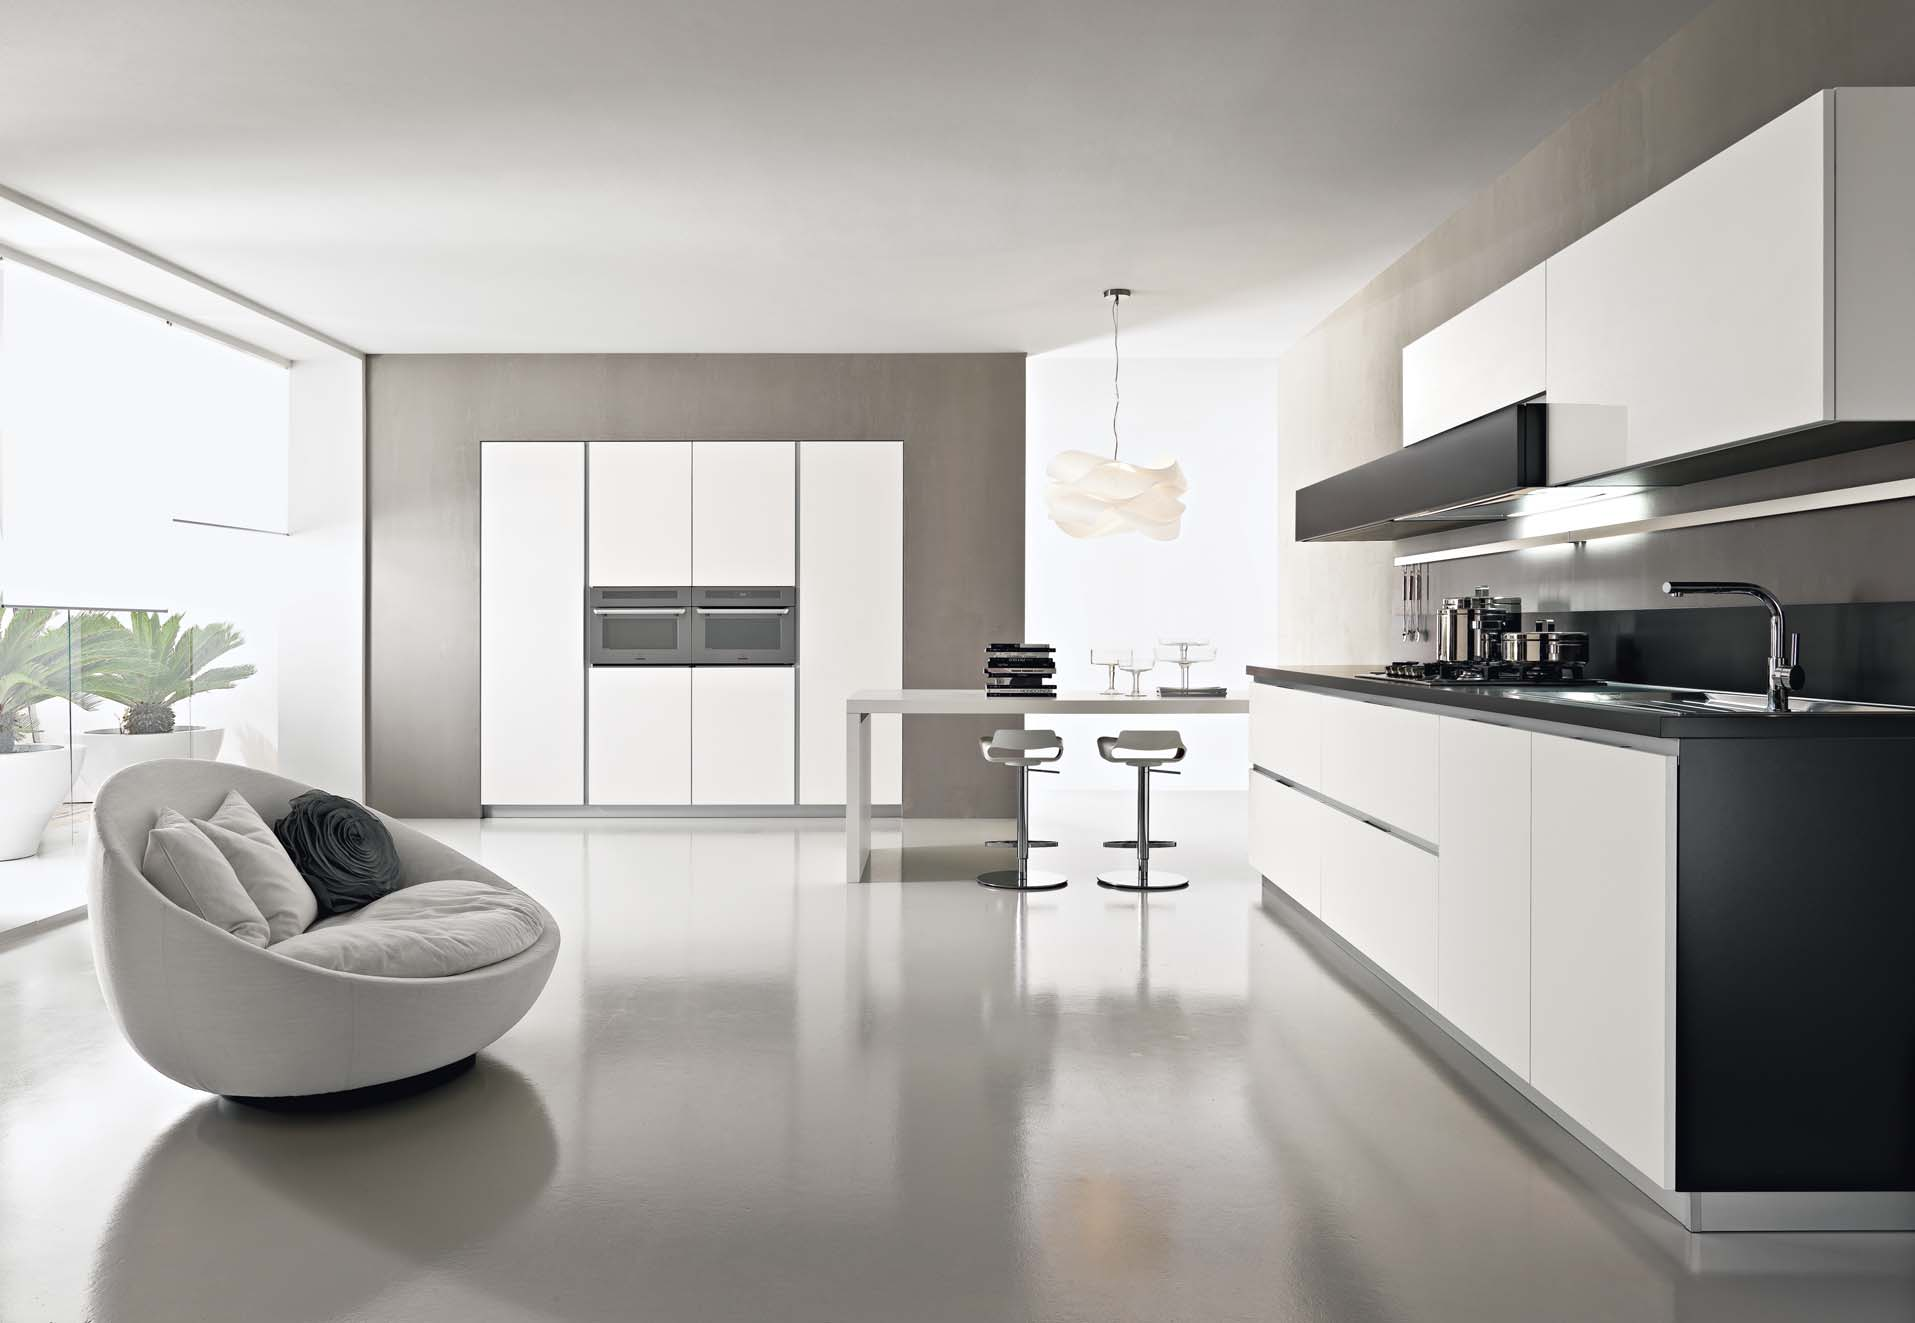 Great Italian Design Kitchens Modern 1915 x 1323 · 108 kB · jpeg